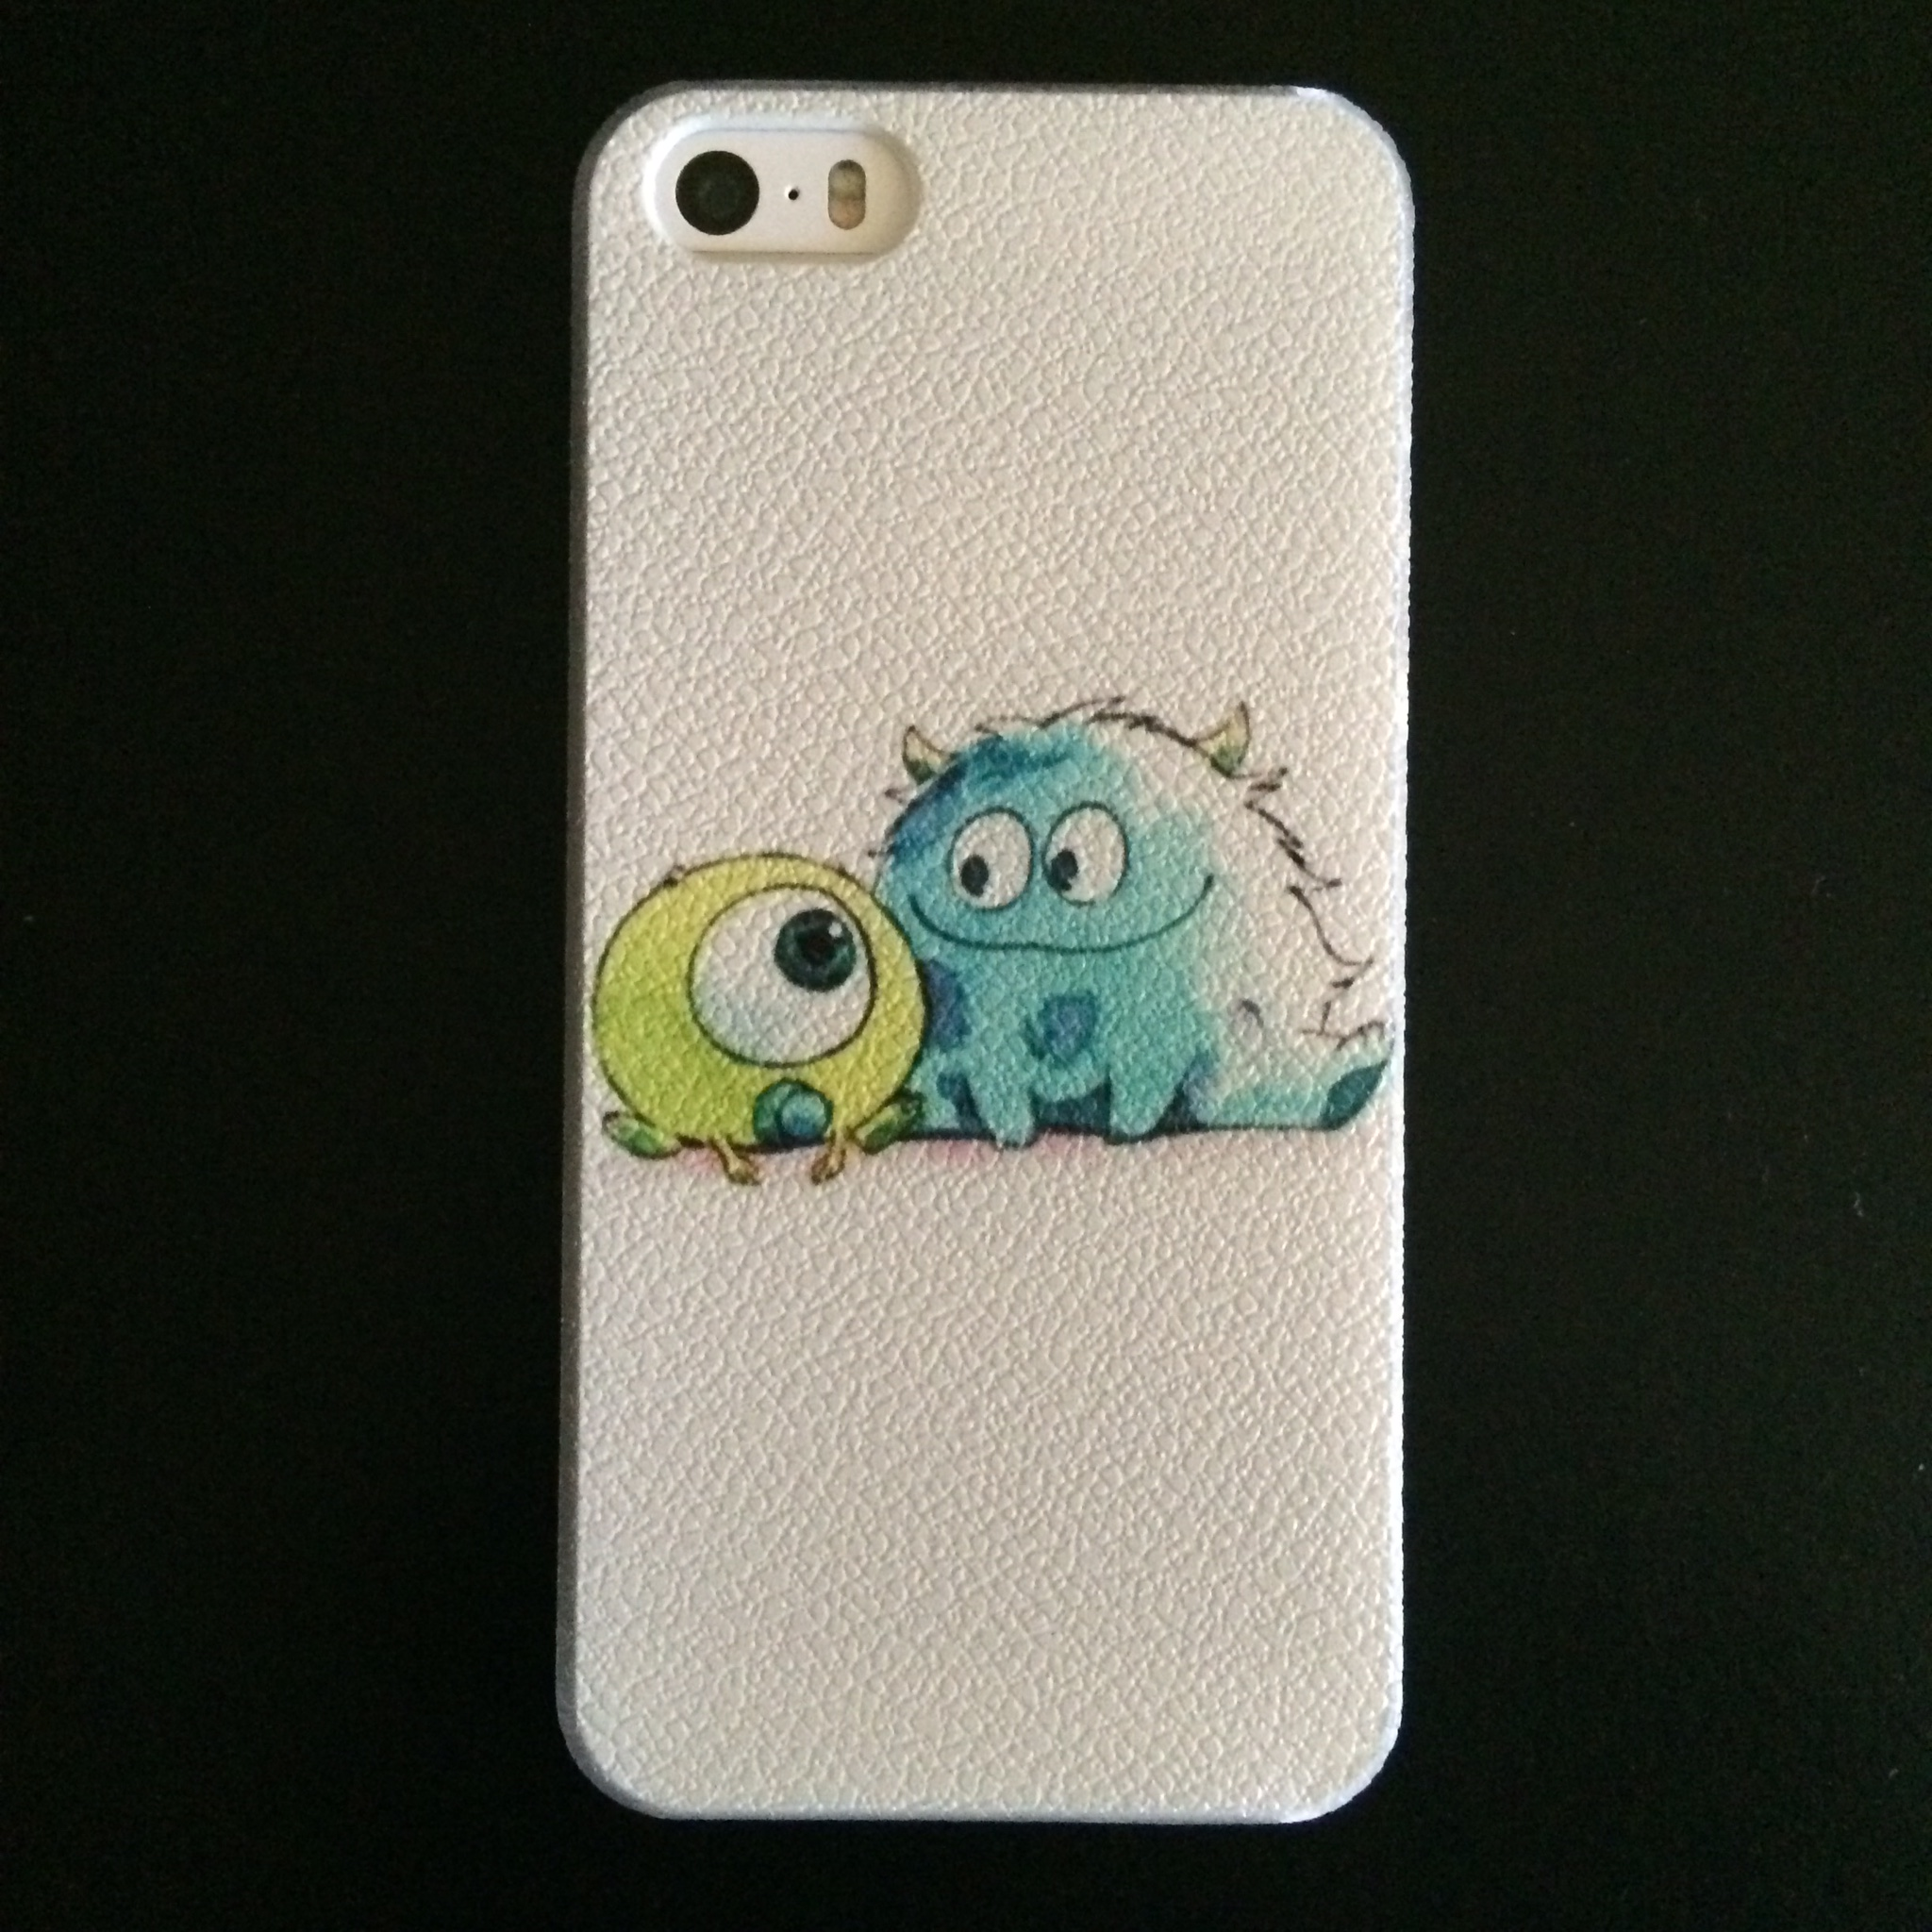 Adorable Baby Monsters Inc Case For Iphone 5 5s Sold By Simply On Storenvy